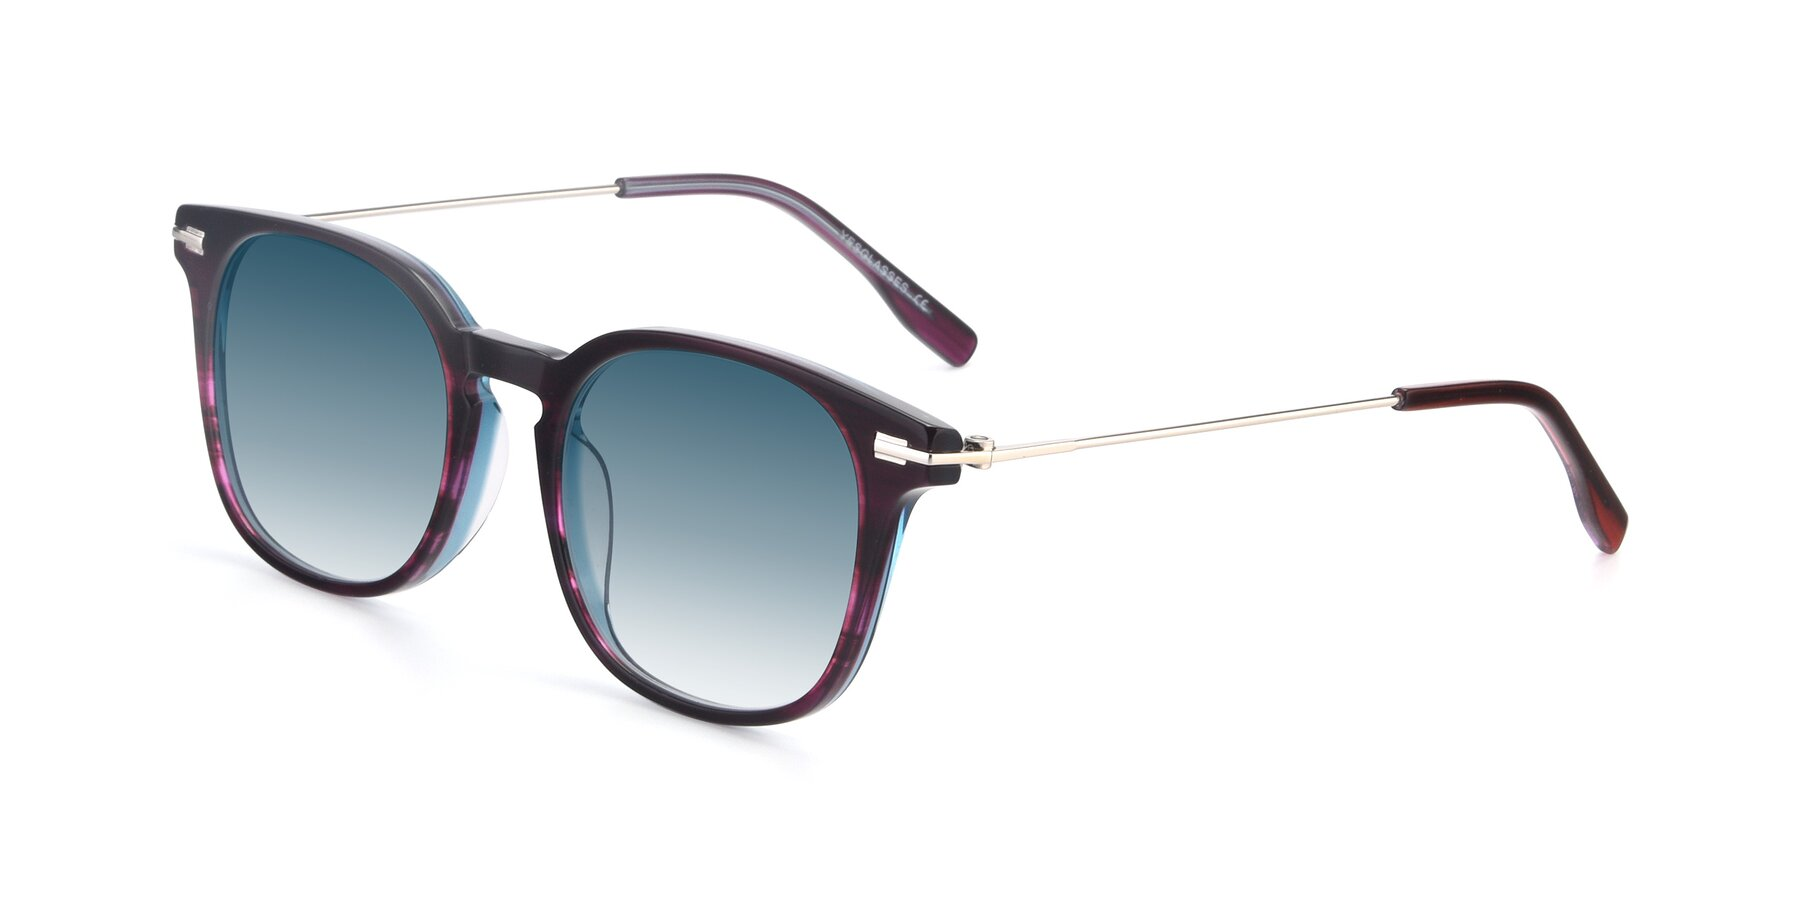 Angle of 17711 in Dark Purple with Blue Gradient Lenses